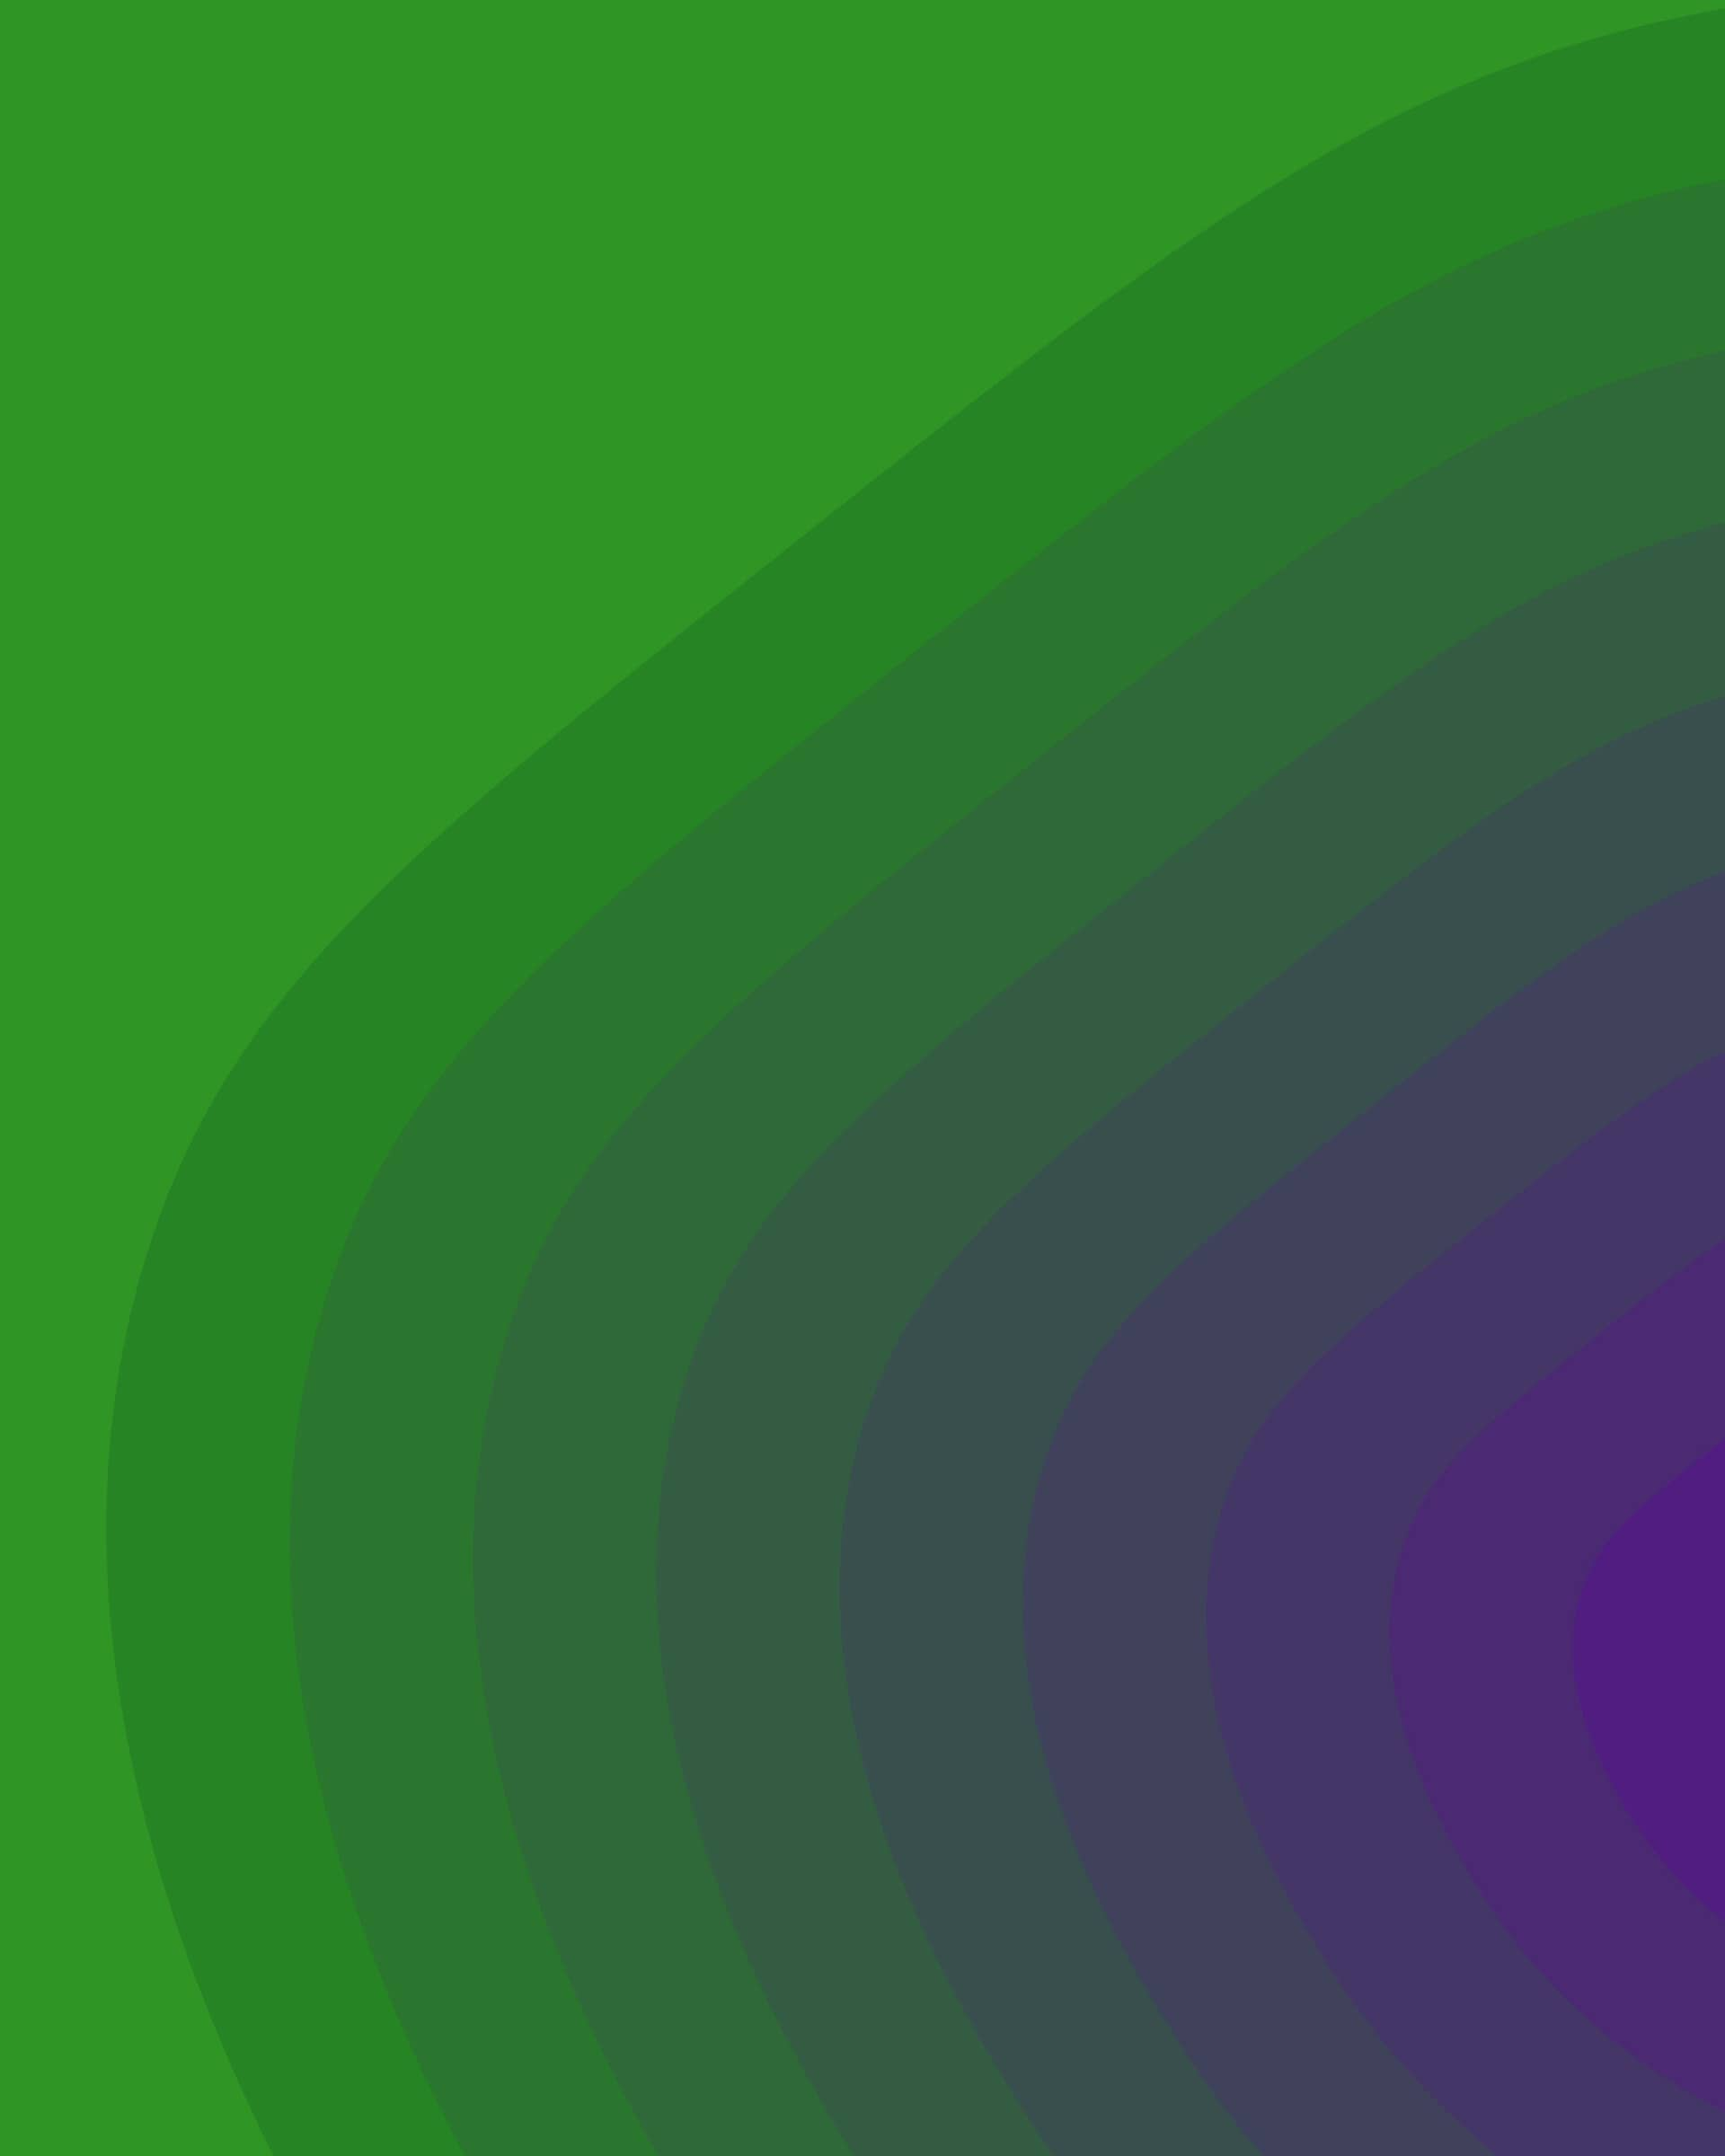 Yosiento branded purple-to-green organic background